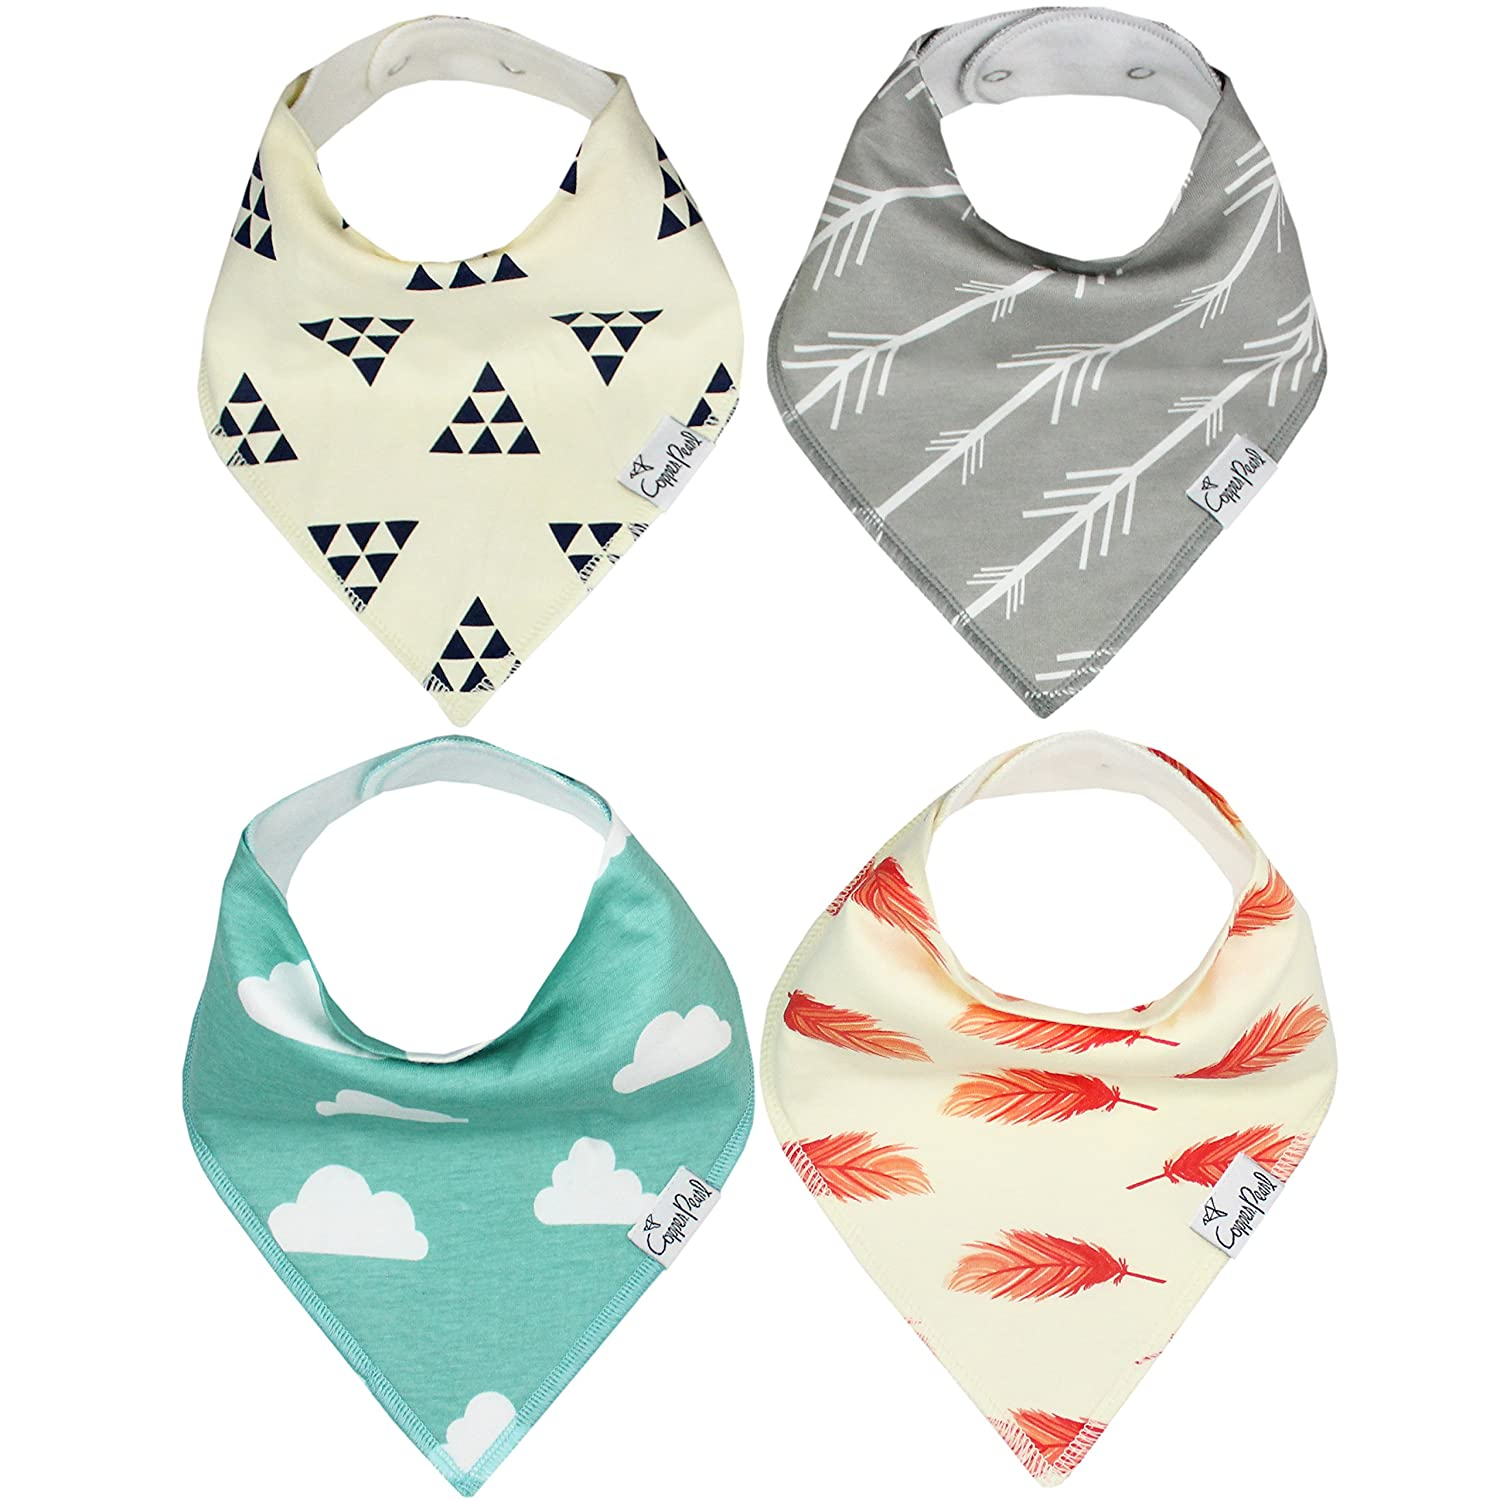 Baby Bandana Drool Bibs for Drooling and Teething 4 Pack Gift Set